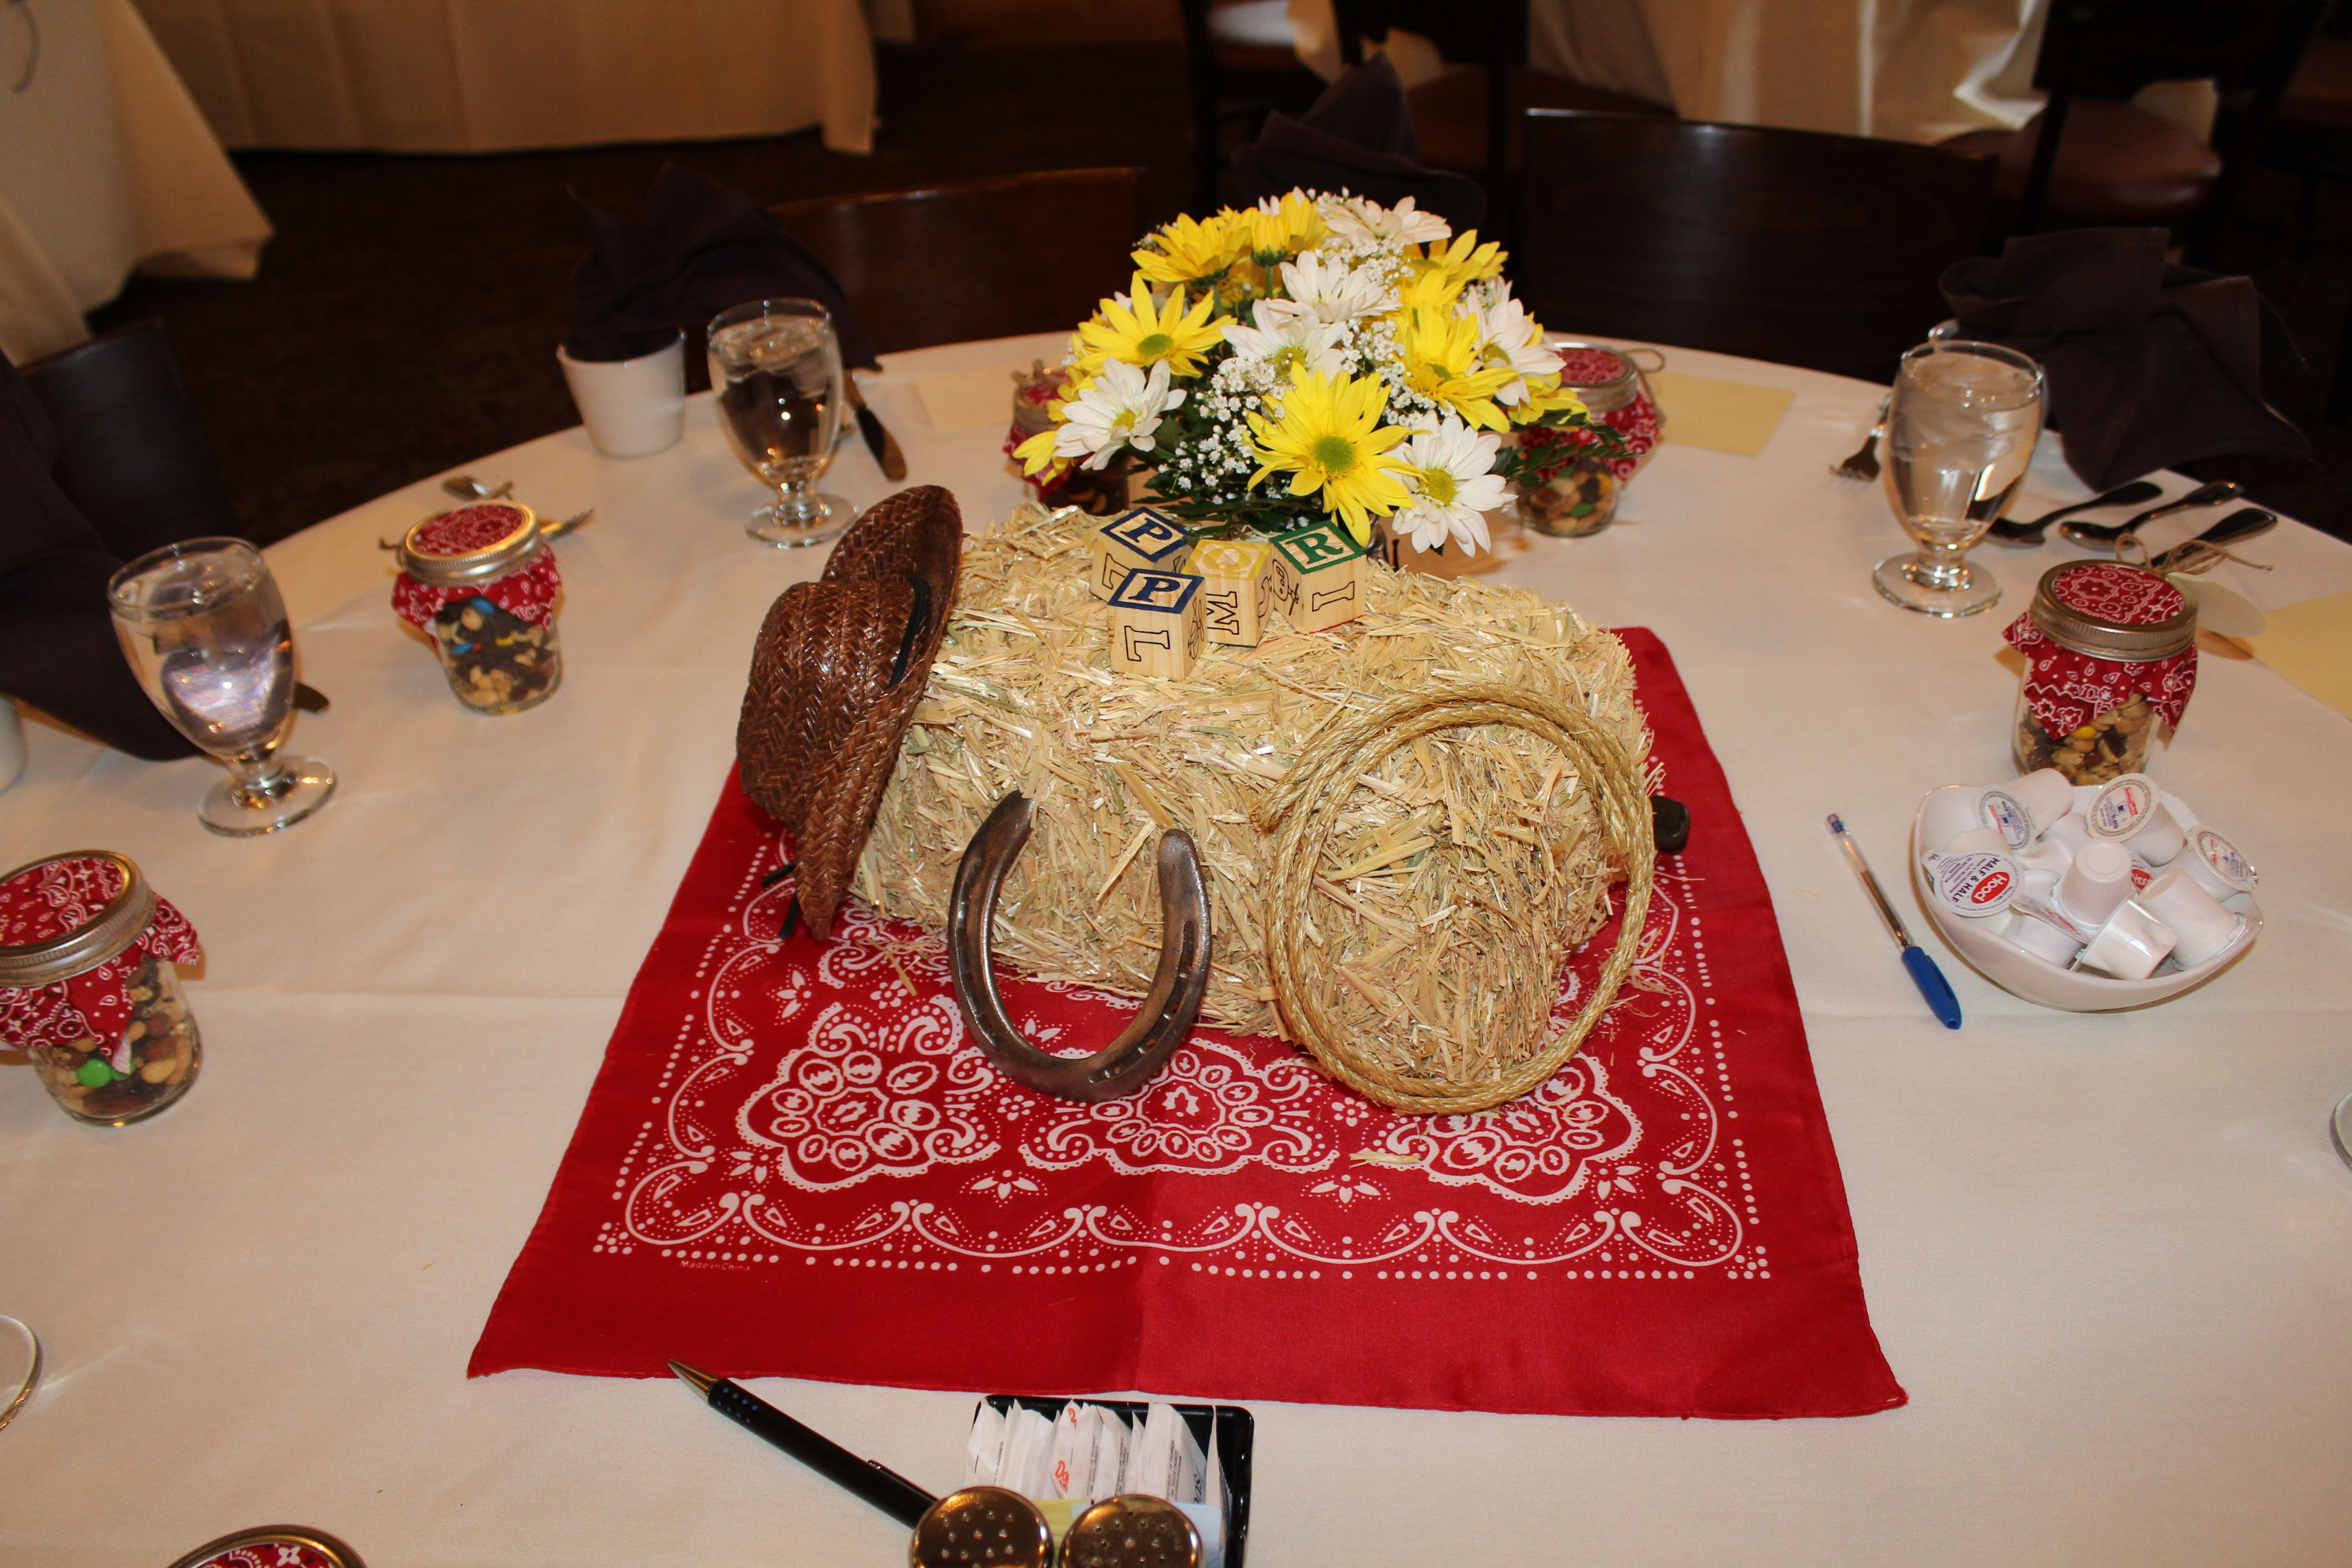 Cowboy western table decorations centerpieces party  : 59adcef568e8848b9844f7c8f7f05b13 from www.pinterest.com size 5184 x 3456 jpeg 7178kB